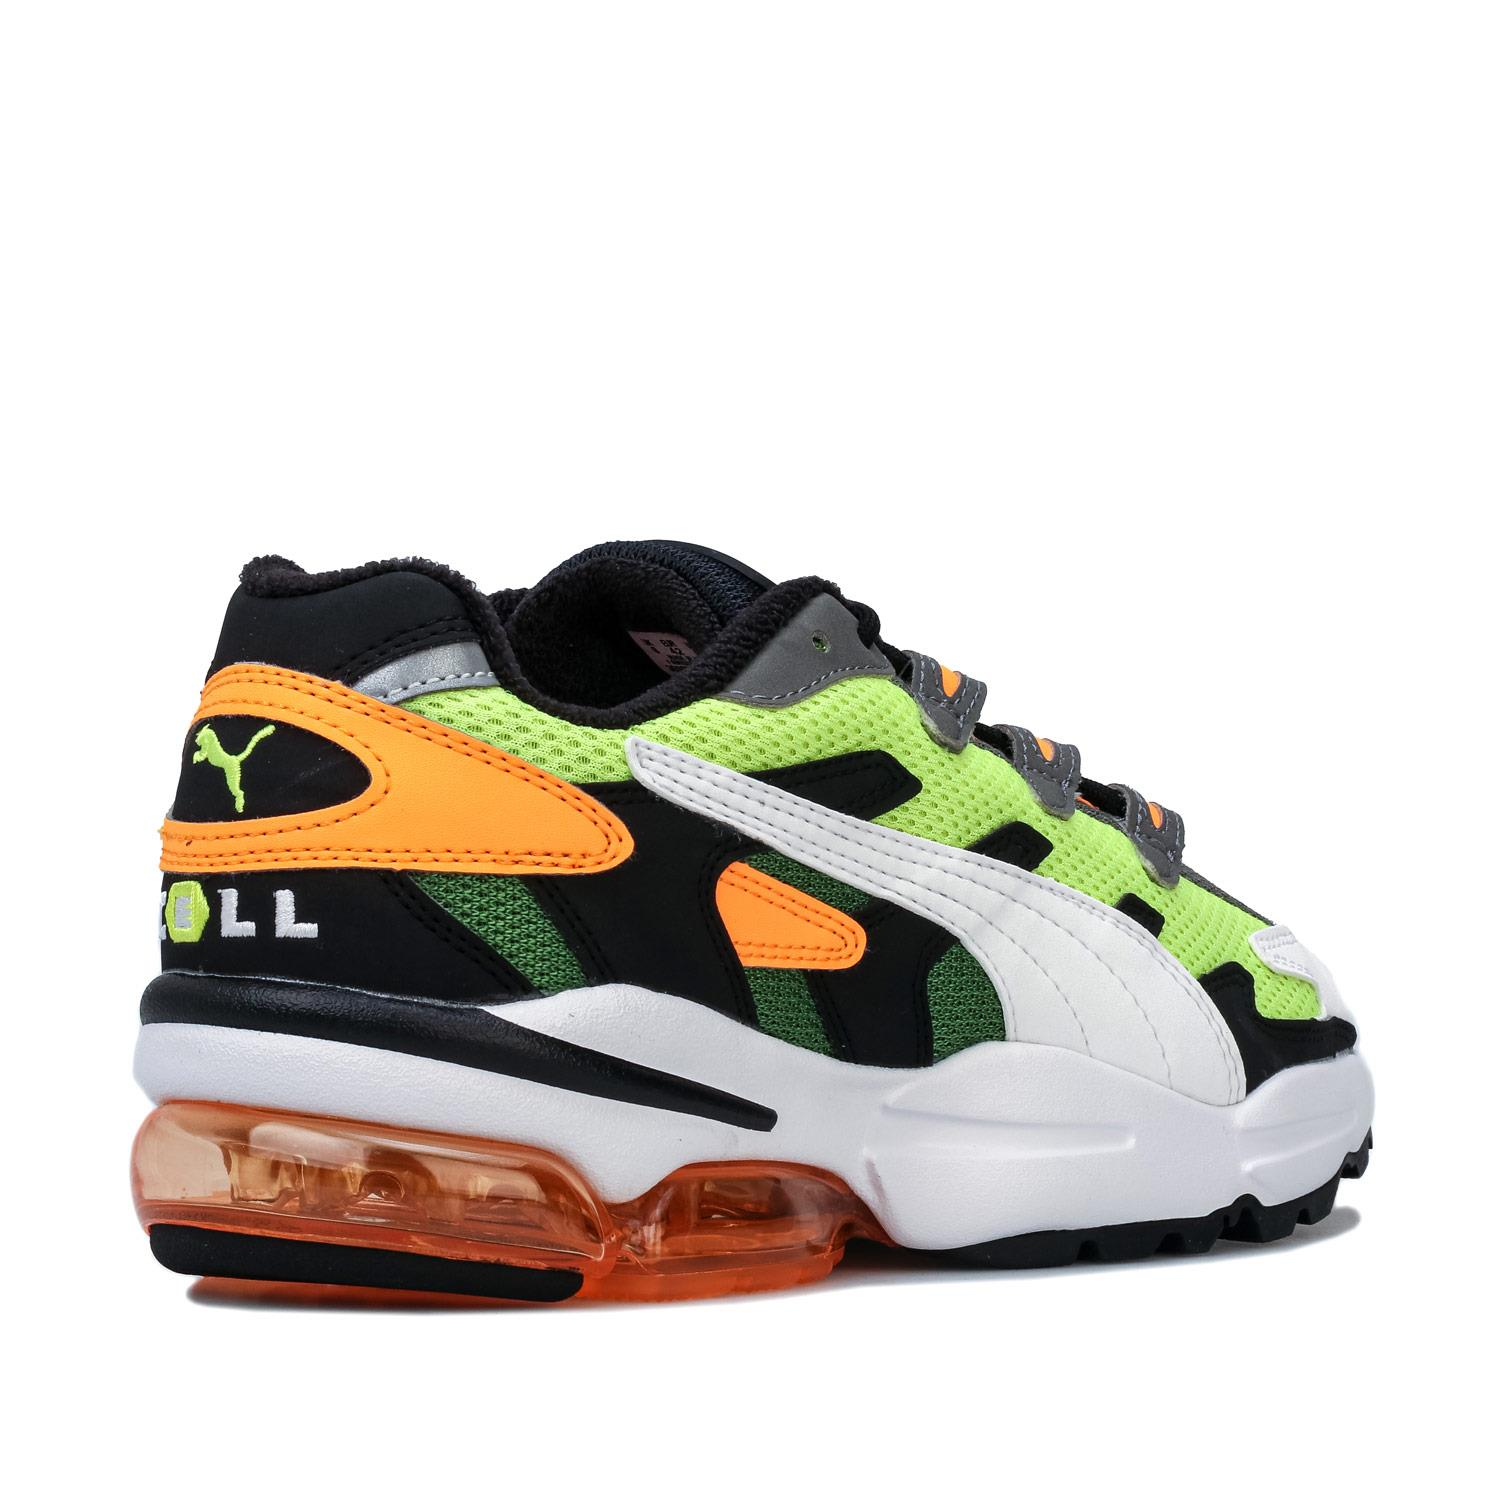 Mens-Puma-Cell-Alien-OG-Trainers-in-Blue-Green-Black-Red-Blue-and-Yellow thumbnail 22